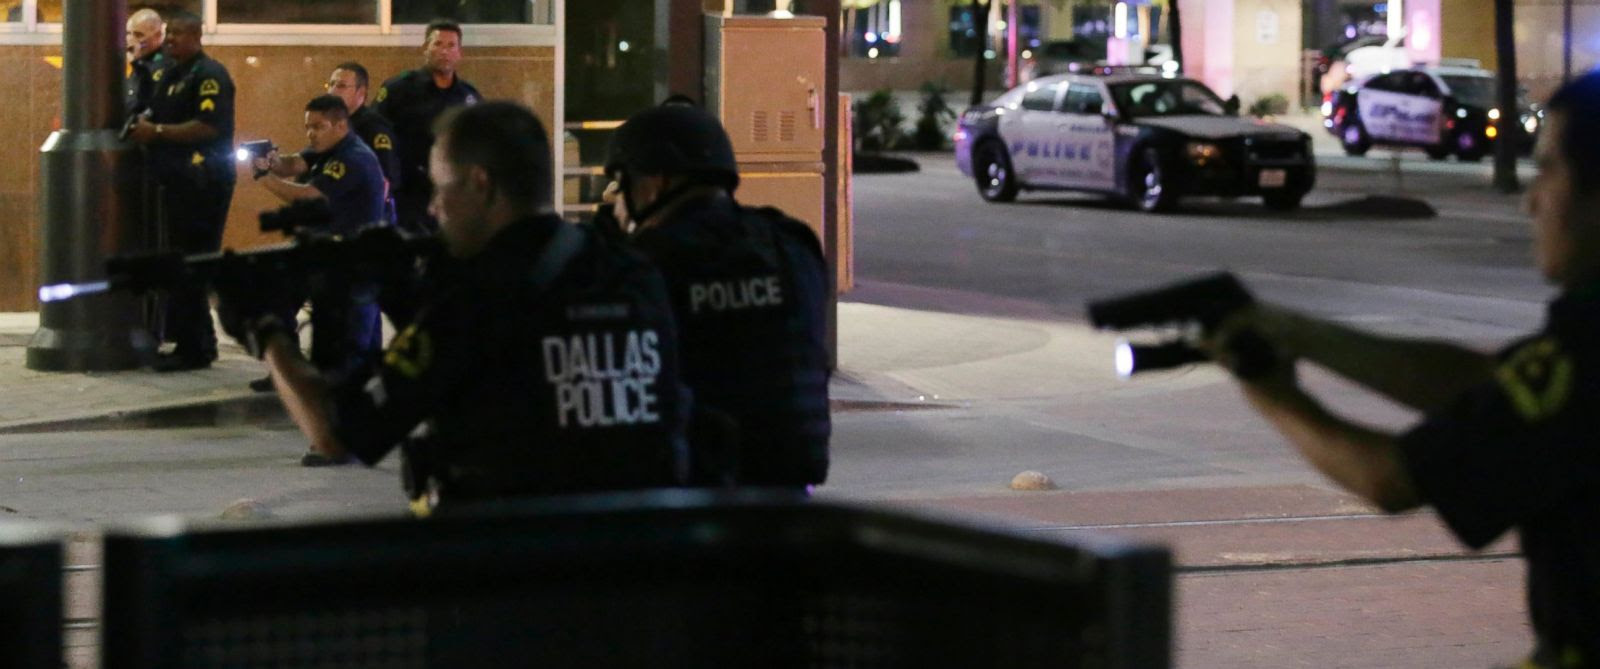 11 Officers Shot, 5 Fatally, by Snipers Amid Dallas Protest; Standoff Ends (Video)